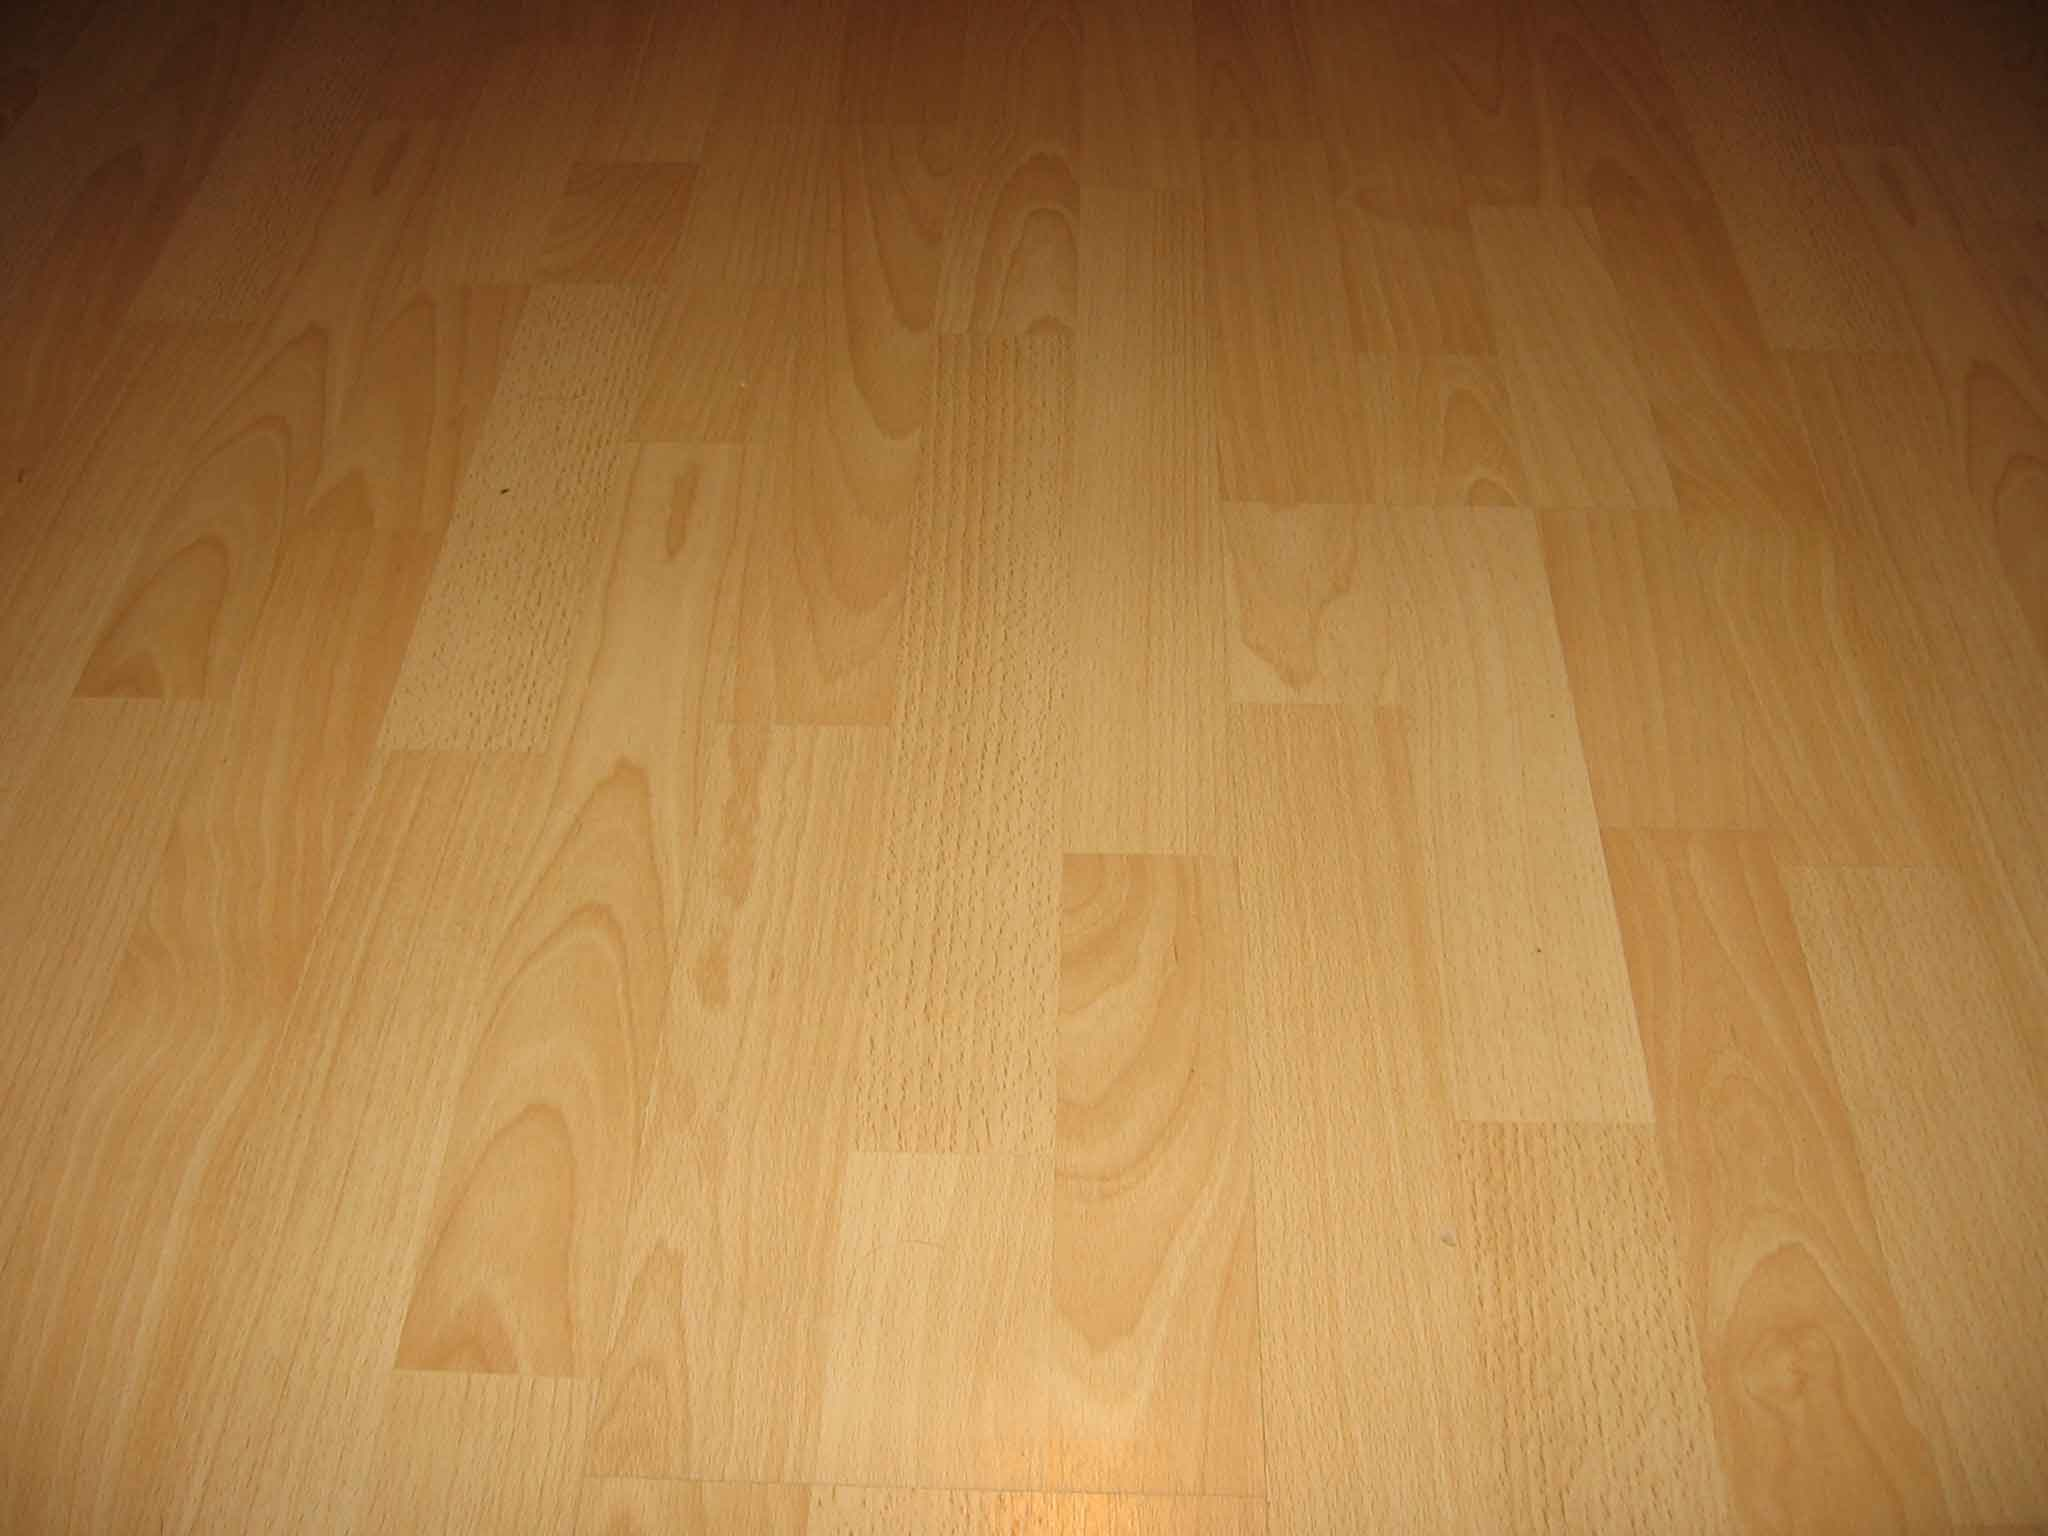 parquet salle de bain quick step devis renovation maison b ziers entreprise gmml. Black Bedroom Furniture Sets. Home Design Ideas